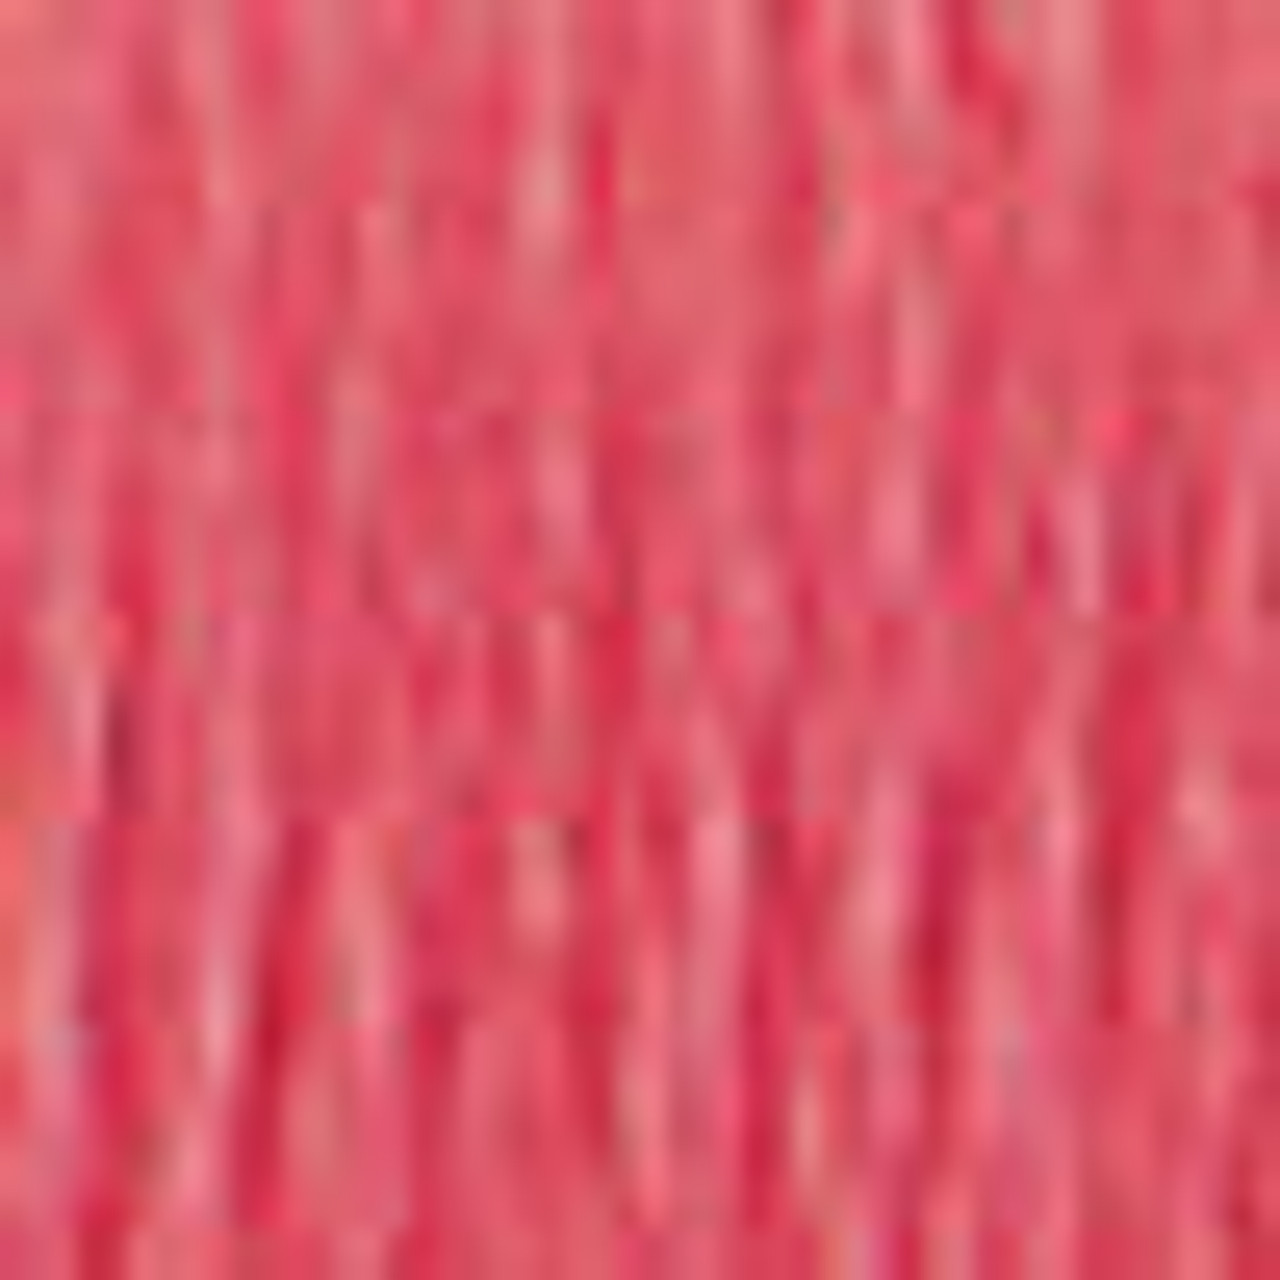 DMC # 3832 Medium Rasberry Floss / Thread